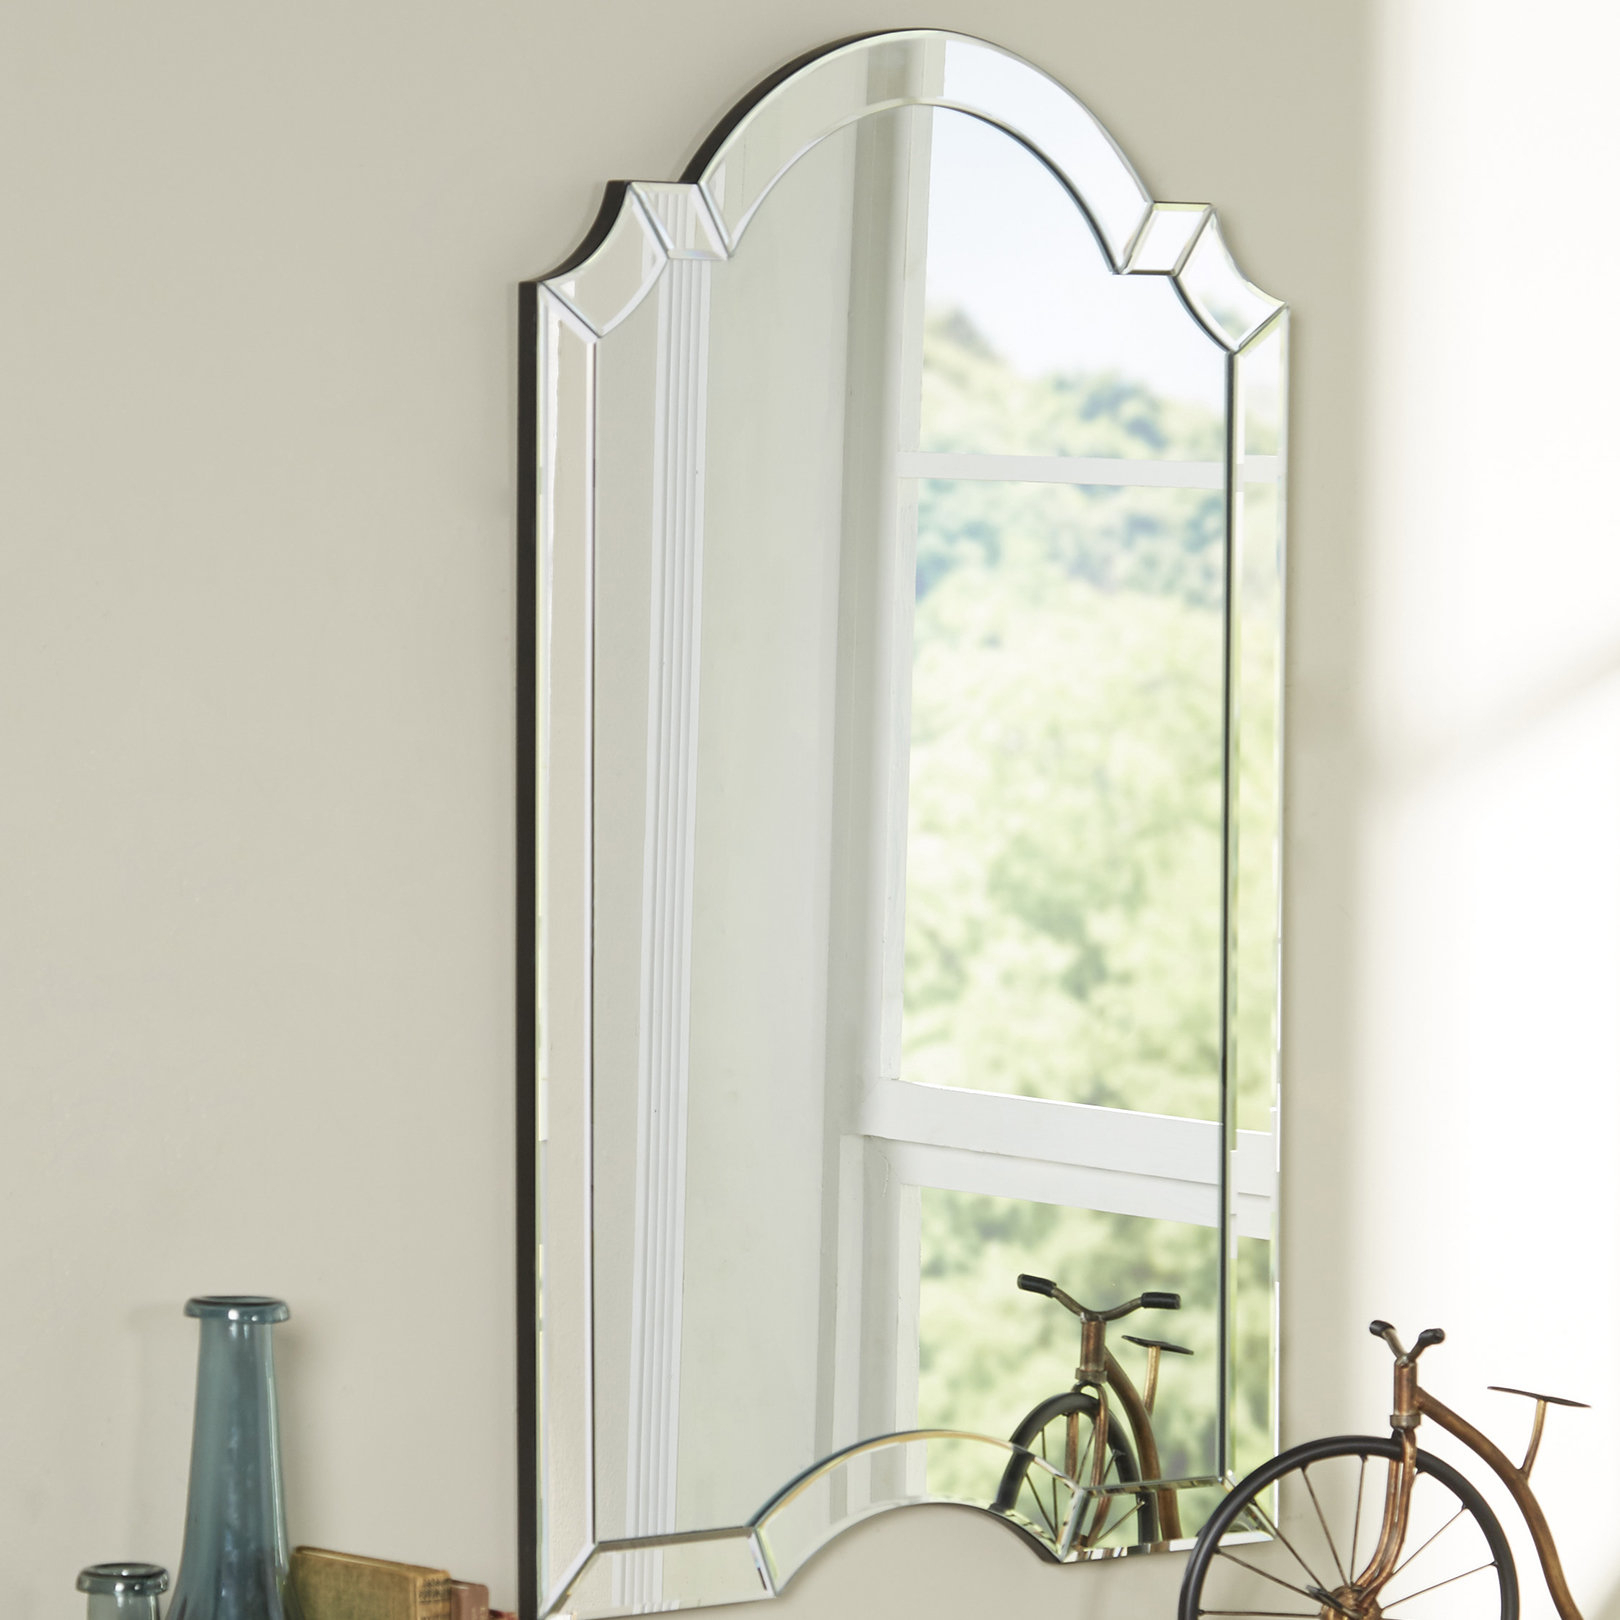 Ekaterina Arch/crowned Top Wall Mirror Intended For Ekaterina Arch/crowned Top Wall Mirrors (Image 16 of 20)